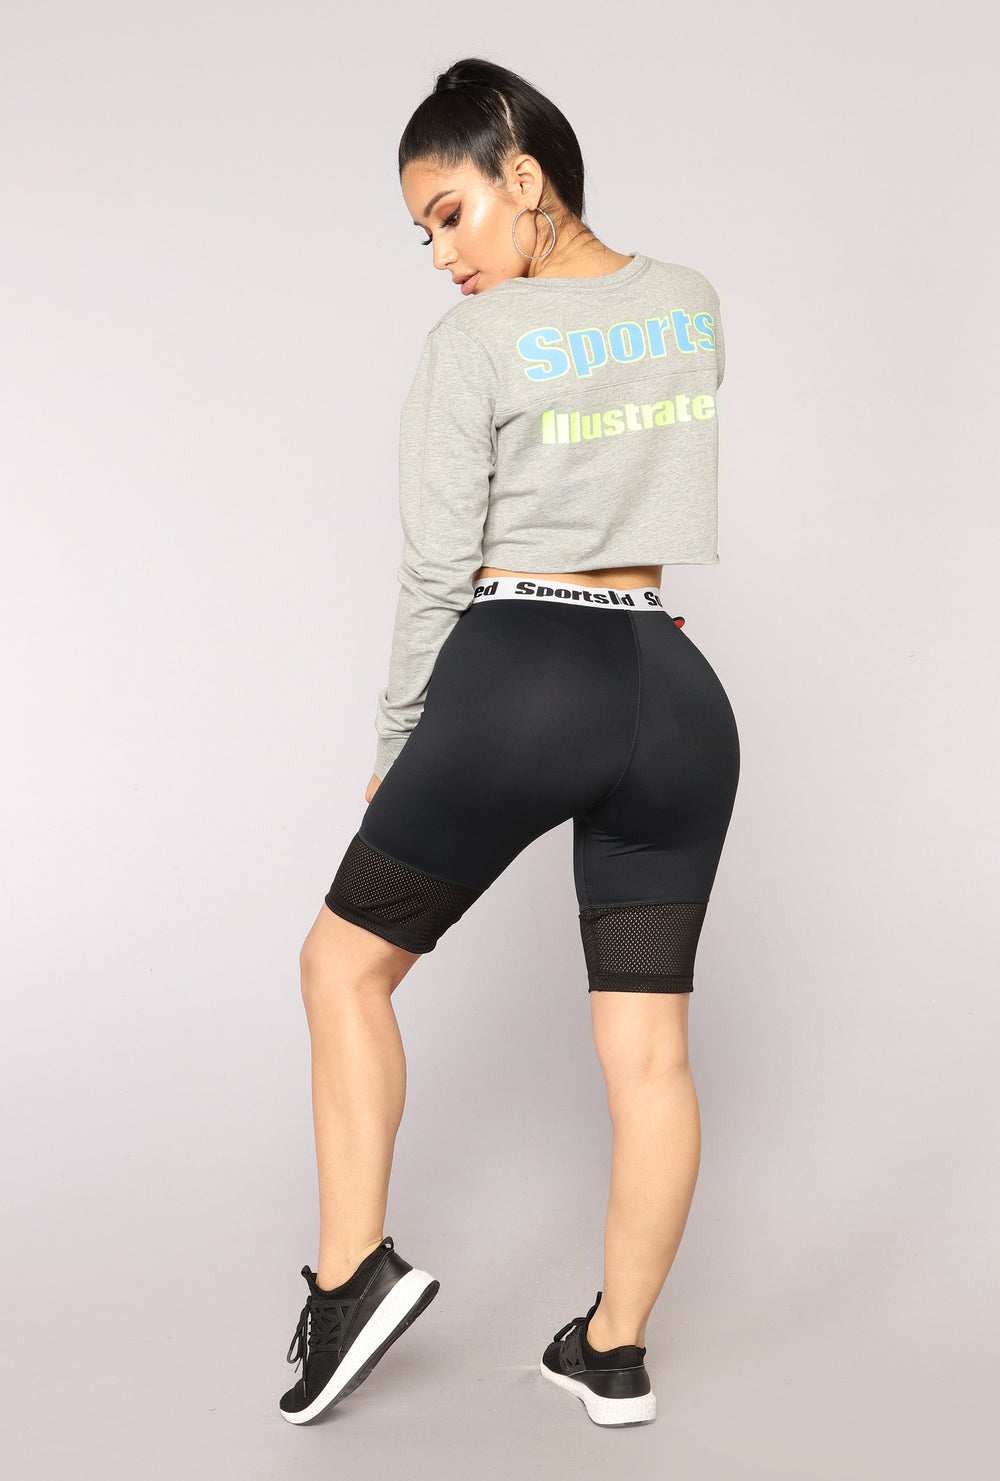 Sports Illustrated Crop Crewneck - Grey